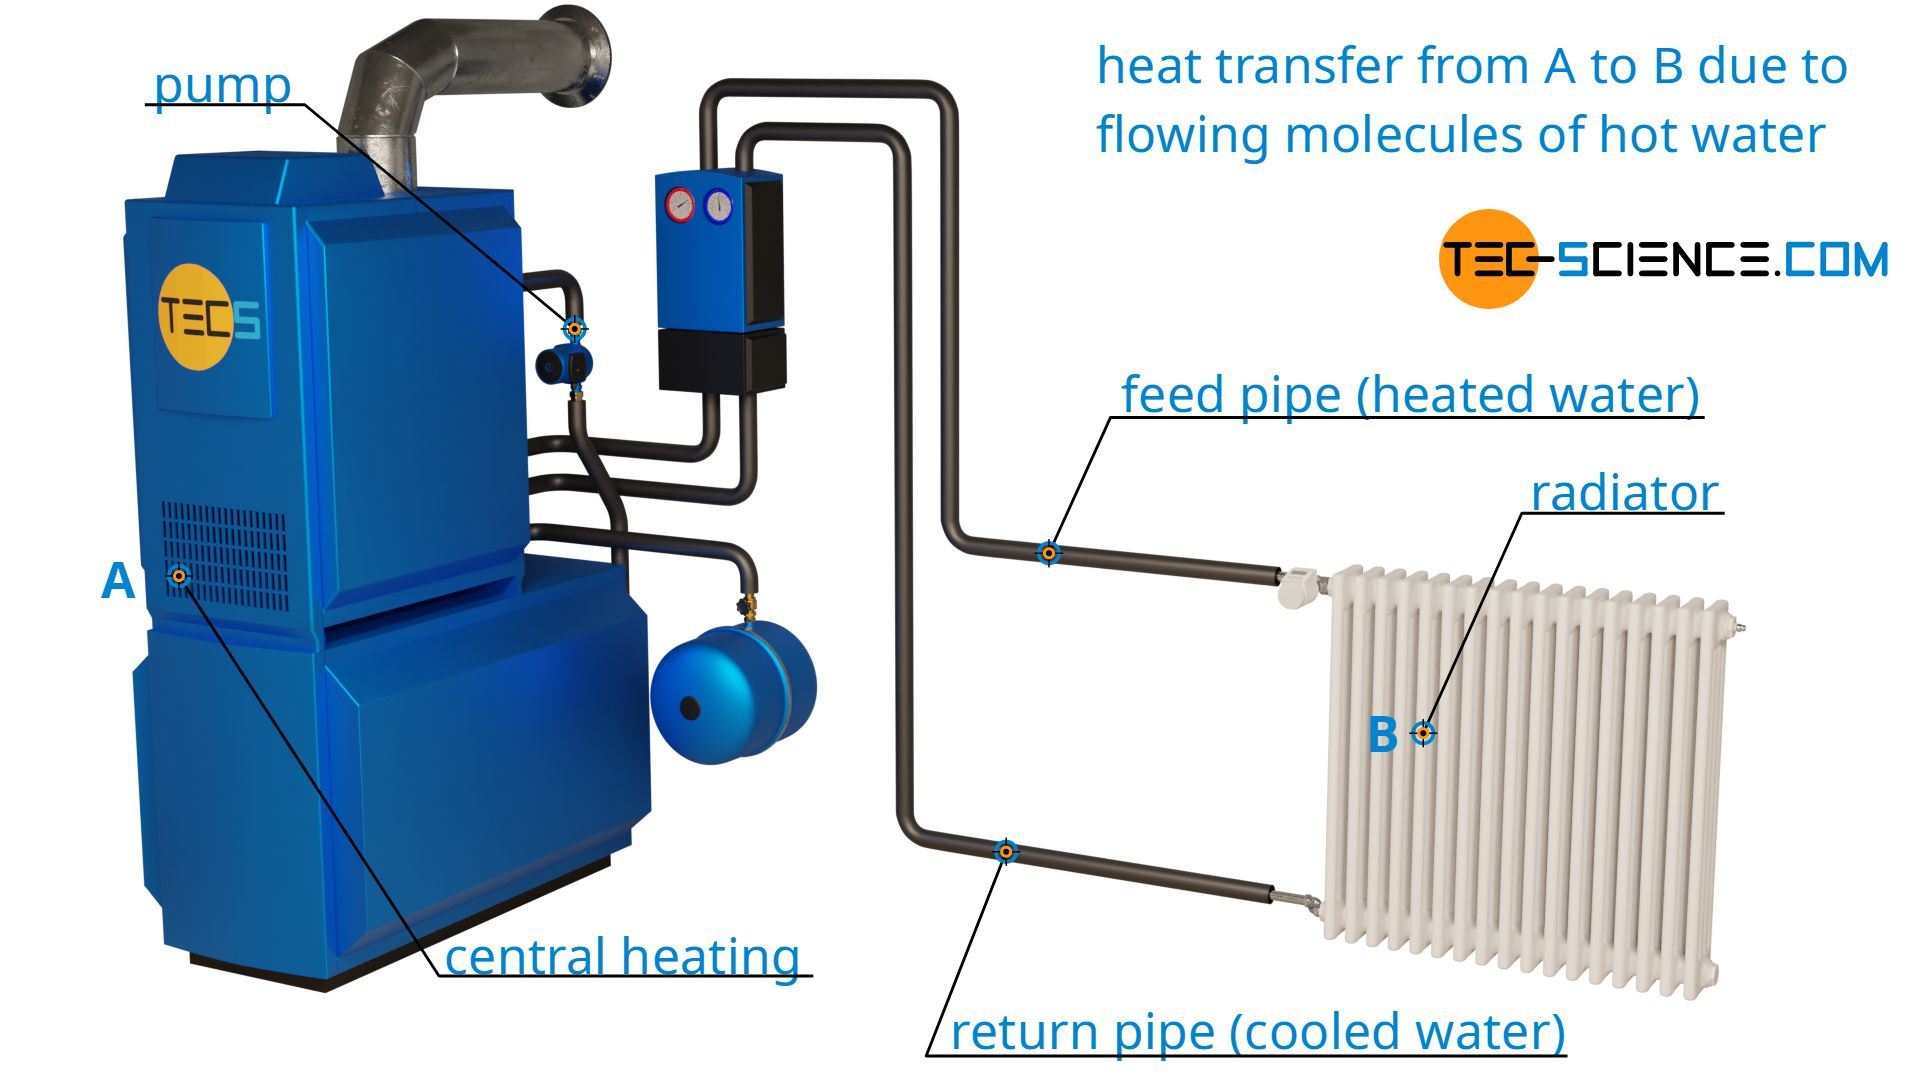 Heat transfer using the example of a central heating system